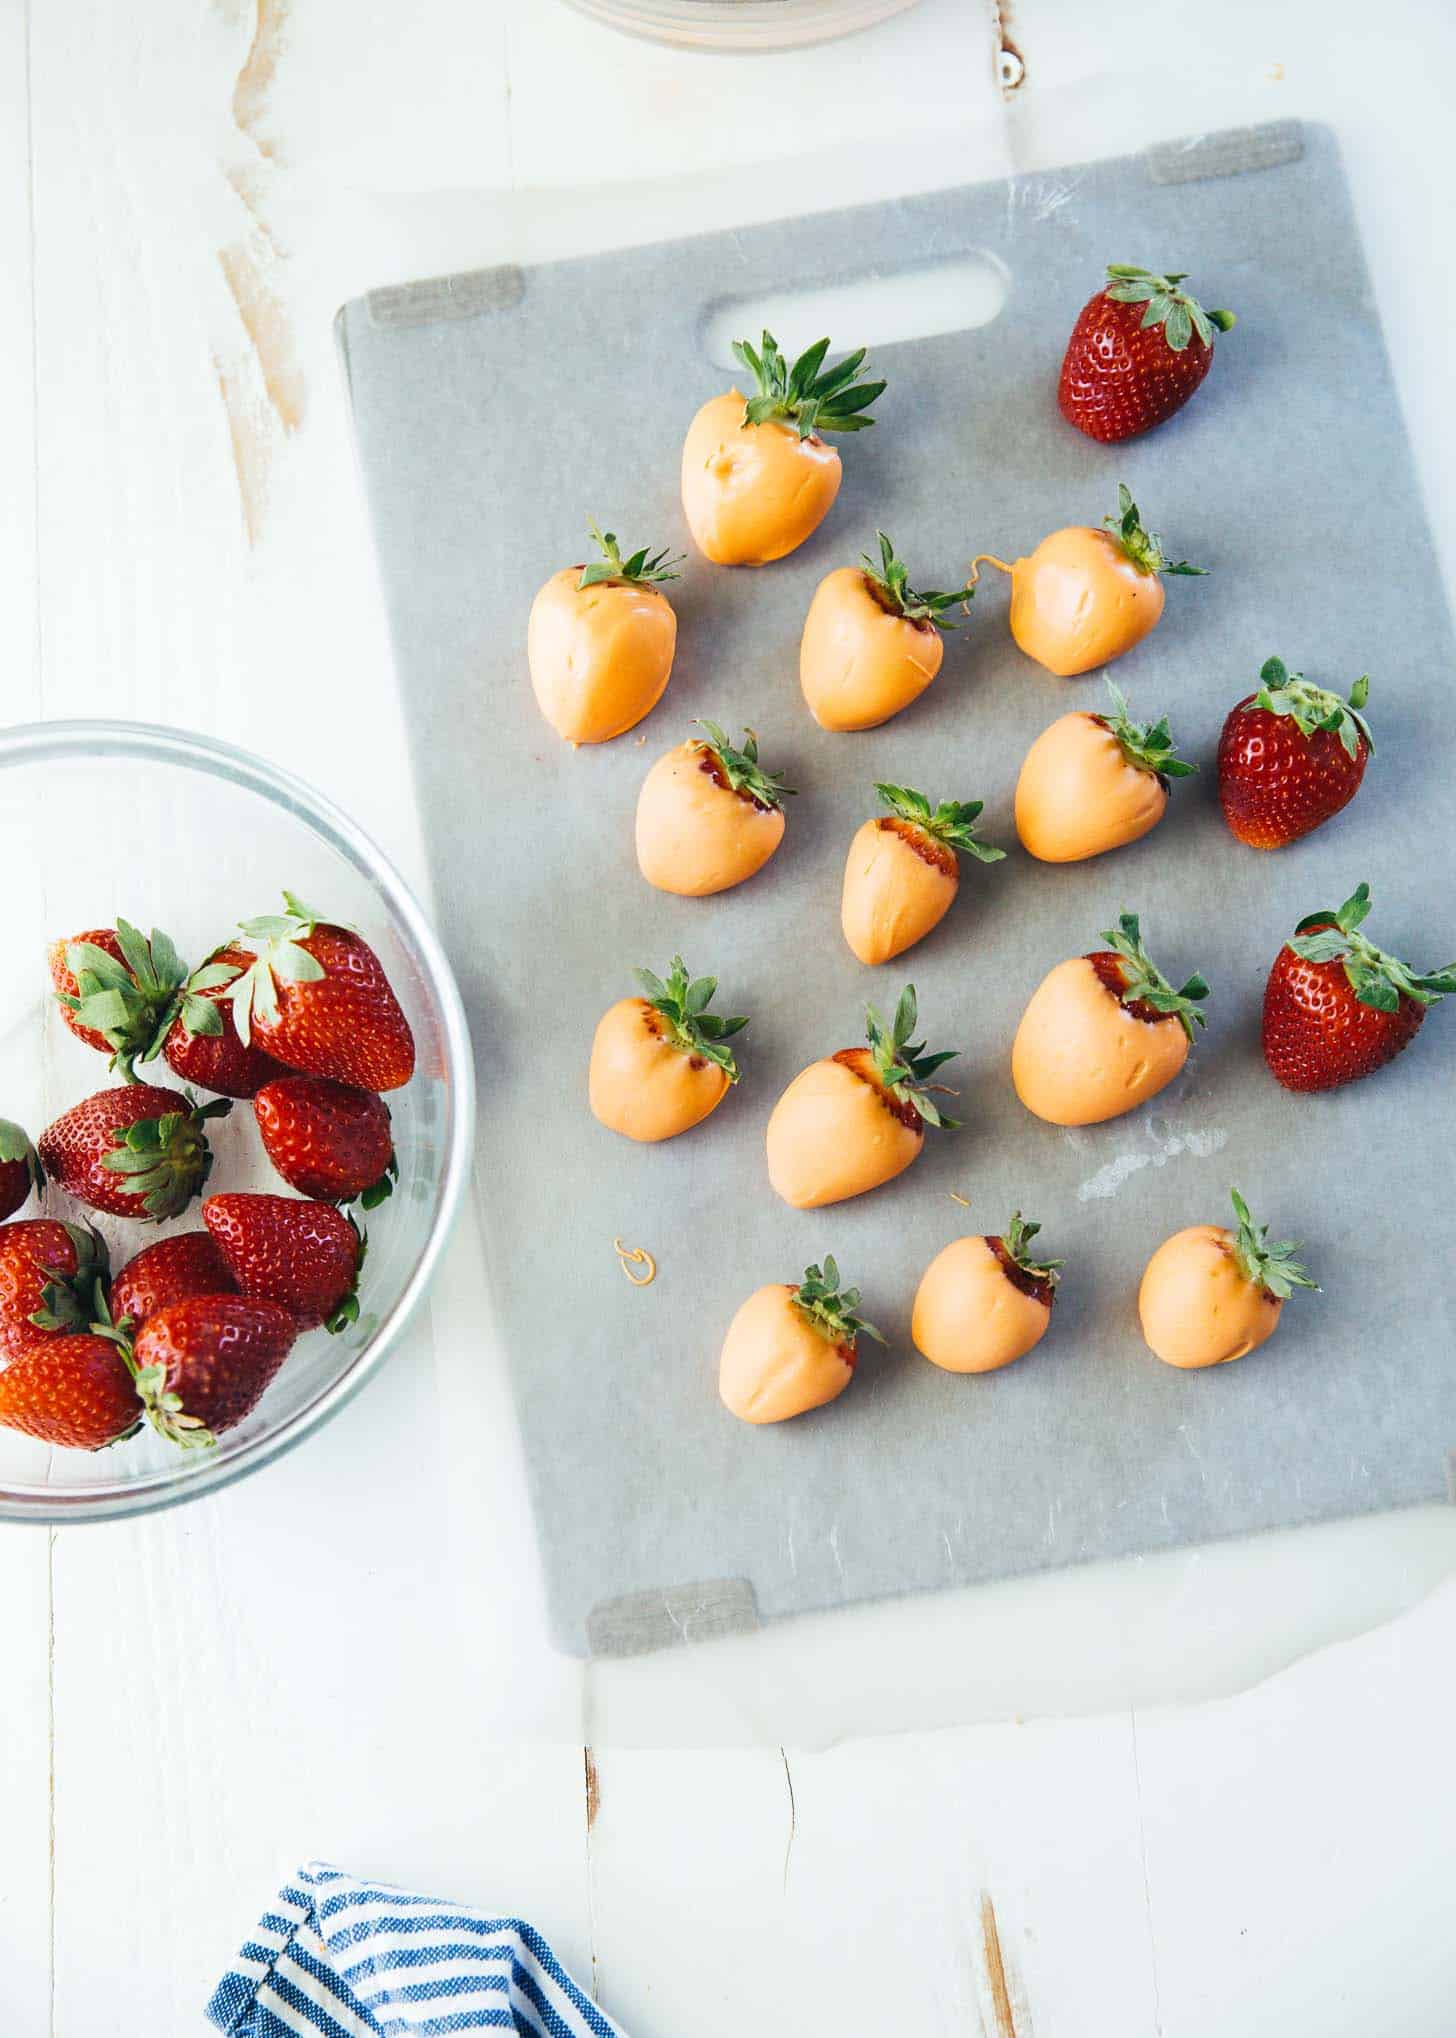 dipped strawberries on a cutting board